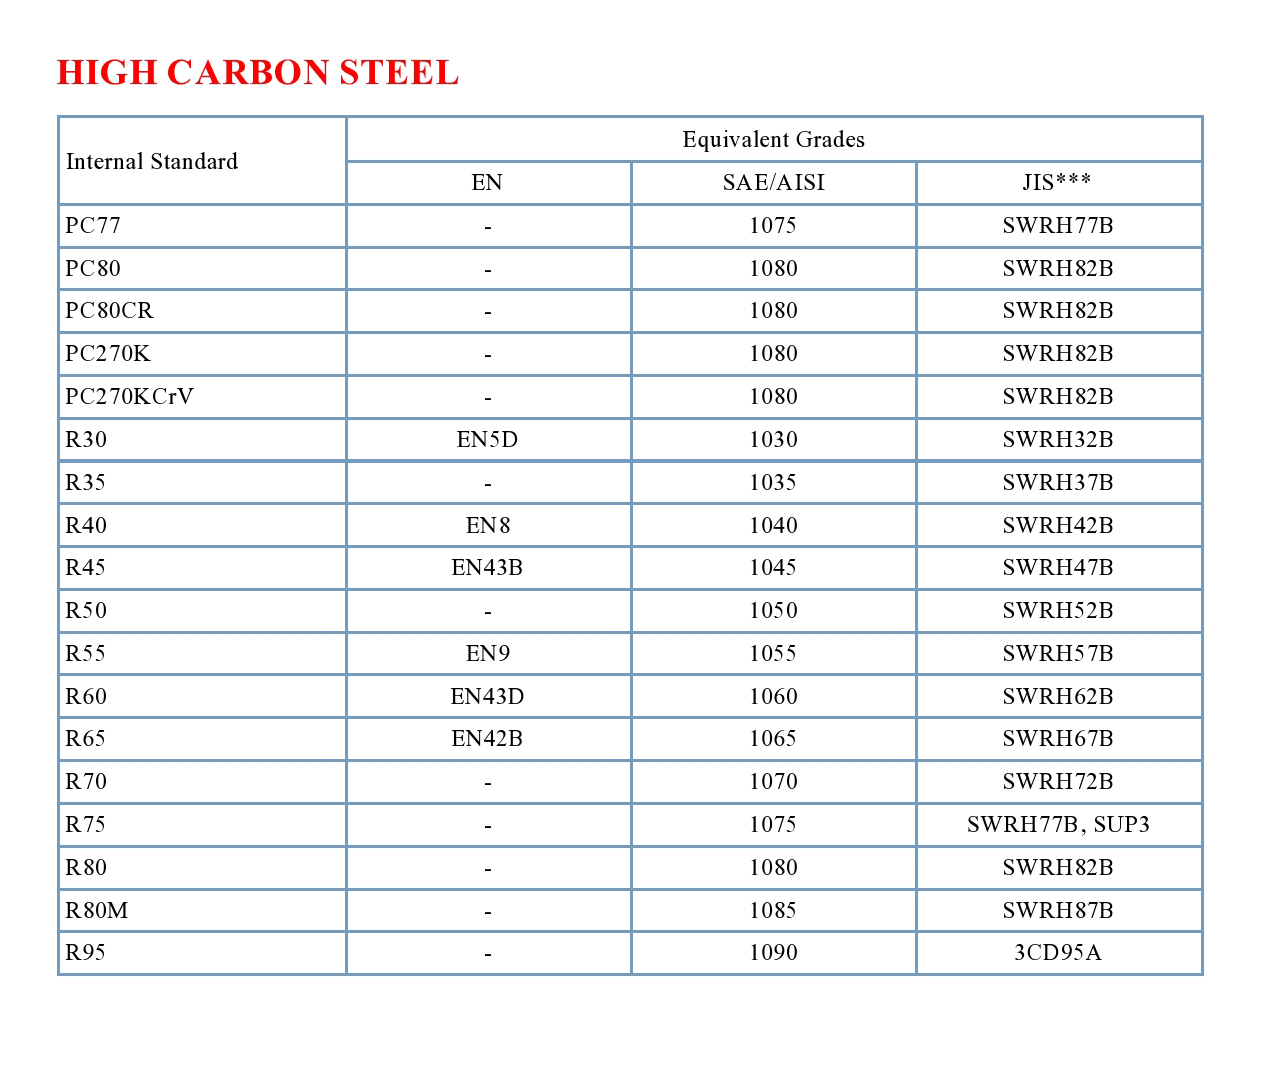 EN9 STEEL PROPERTIES PDF